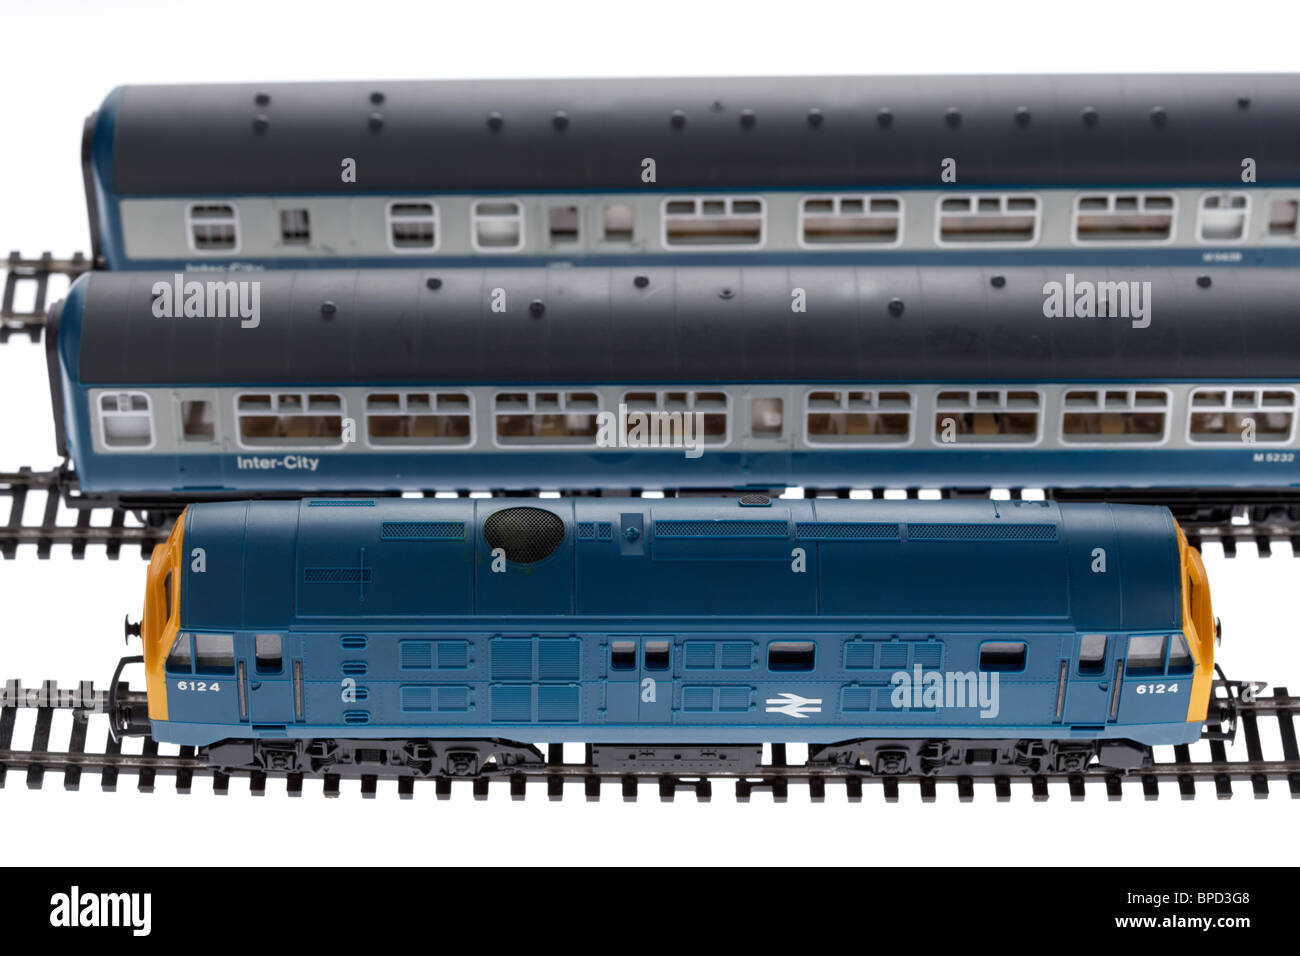 model railway train set manufactured in the 1970s 1980s by